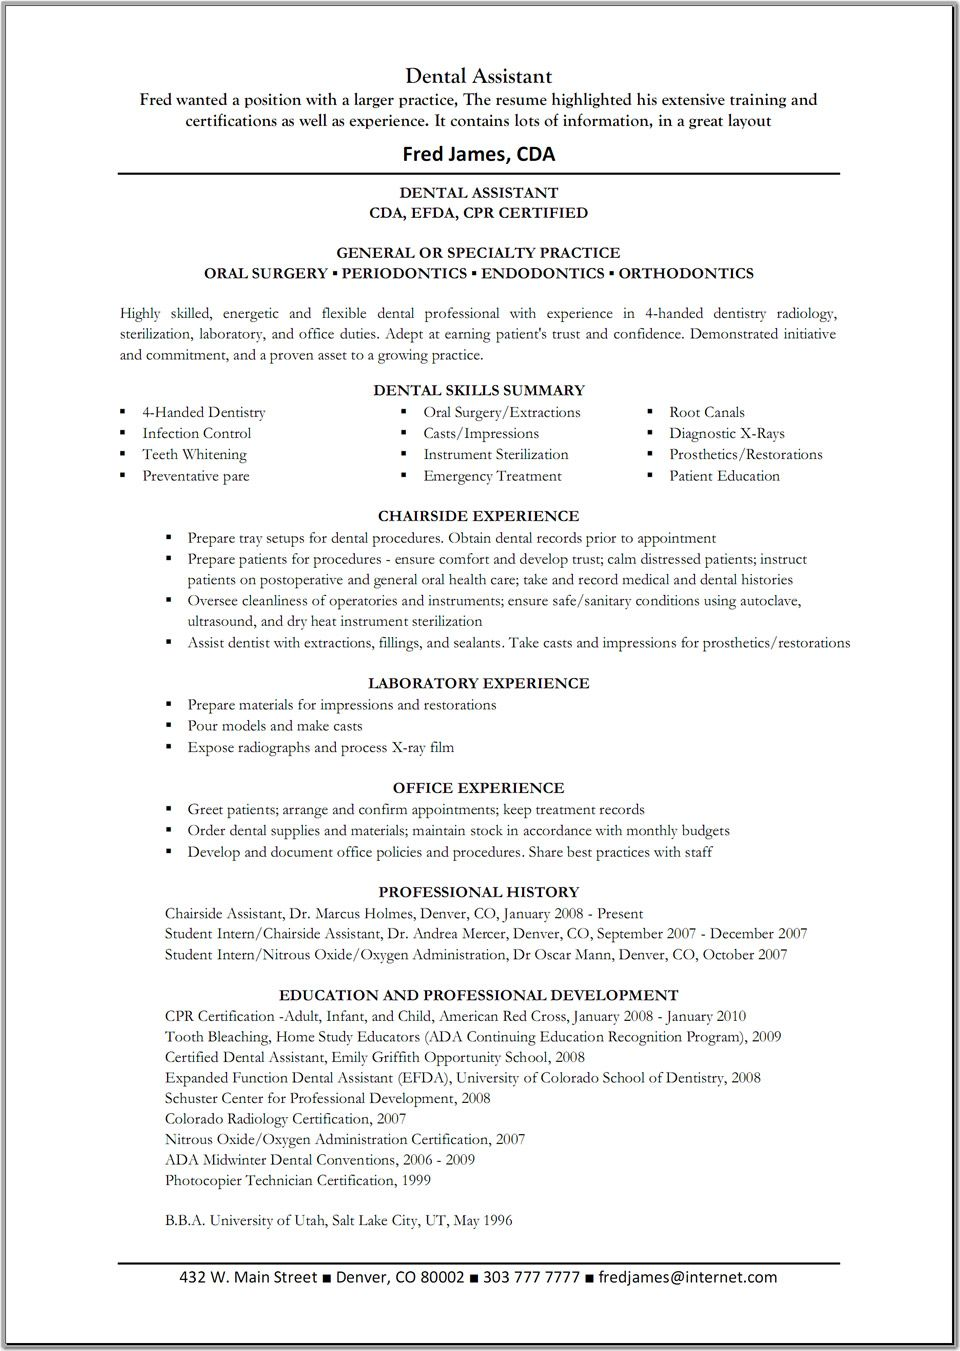 Dental Assistant Resume | Dental Assistant Resume | Dentistry ...